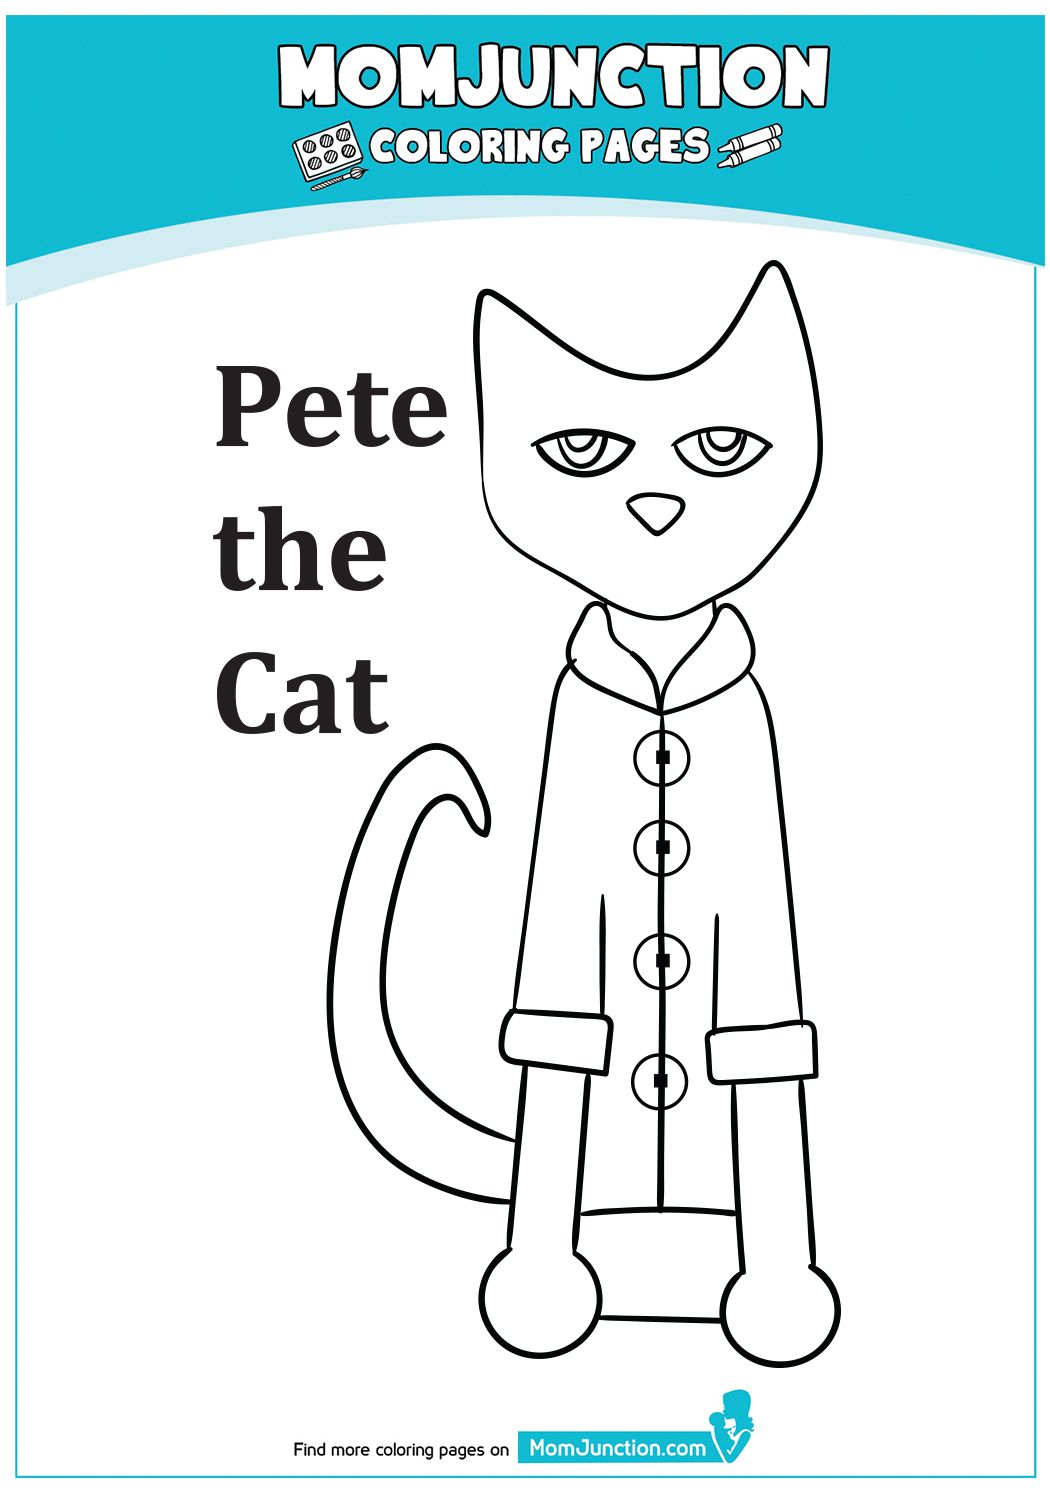 The Guess Pete S Groovy Buttons Coloring Page In 2021 Coloring Pages Pete The Cat Abc Story